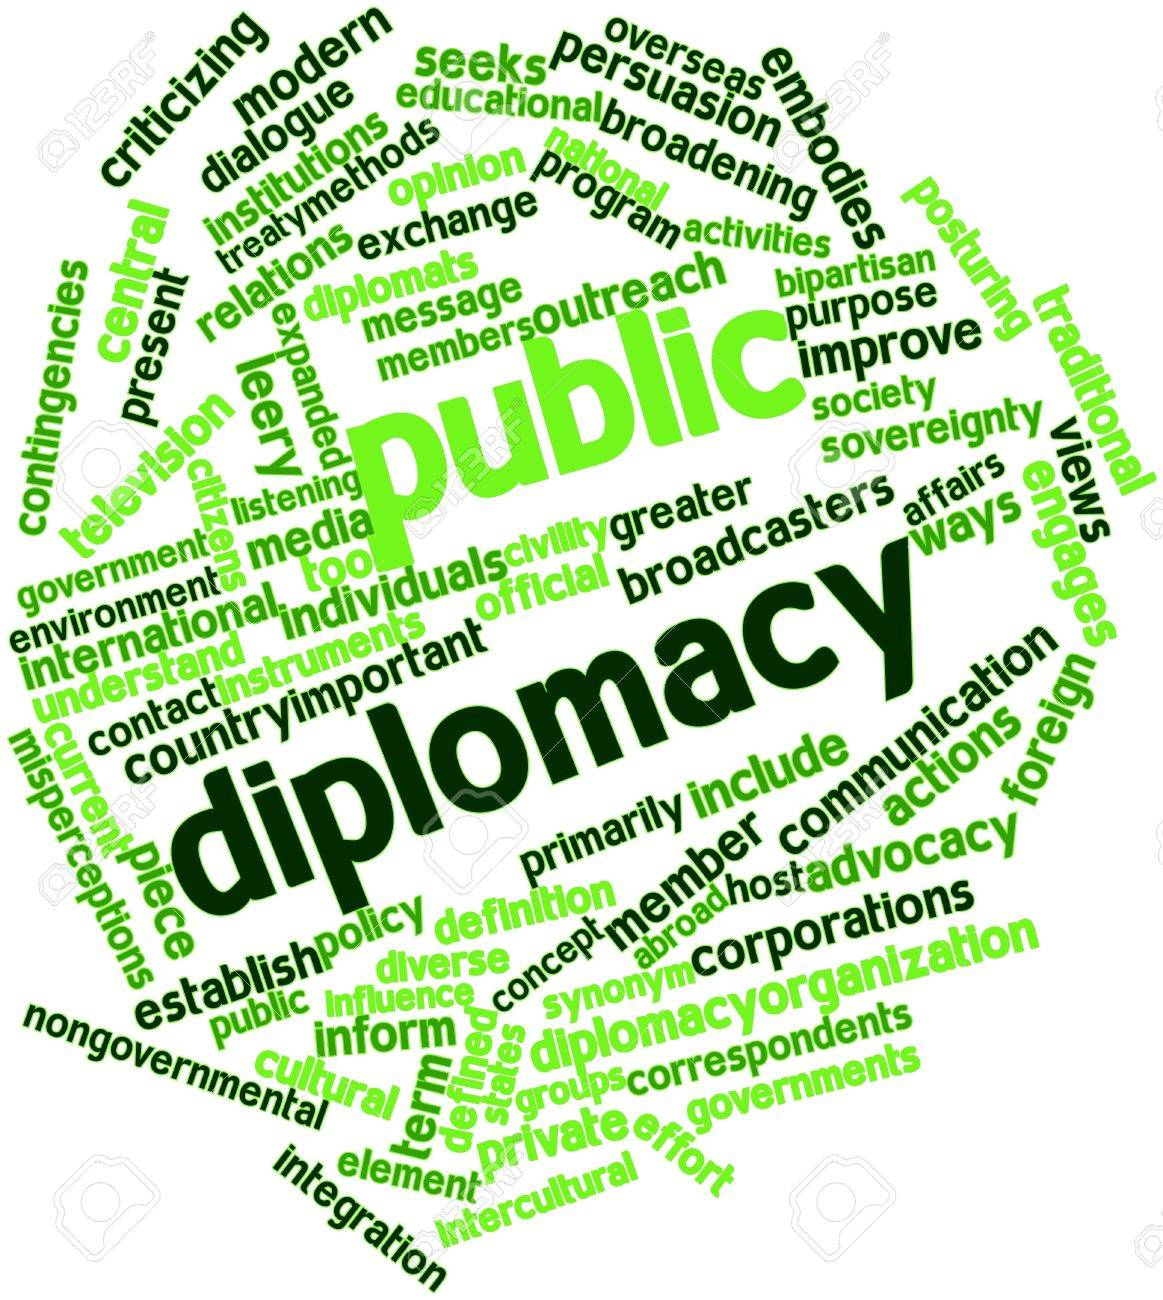 Image result for what is public diplomacy